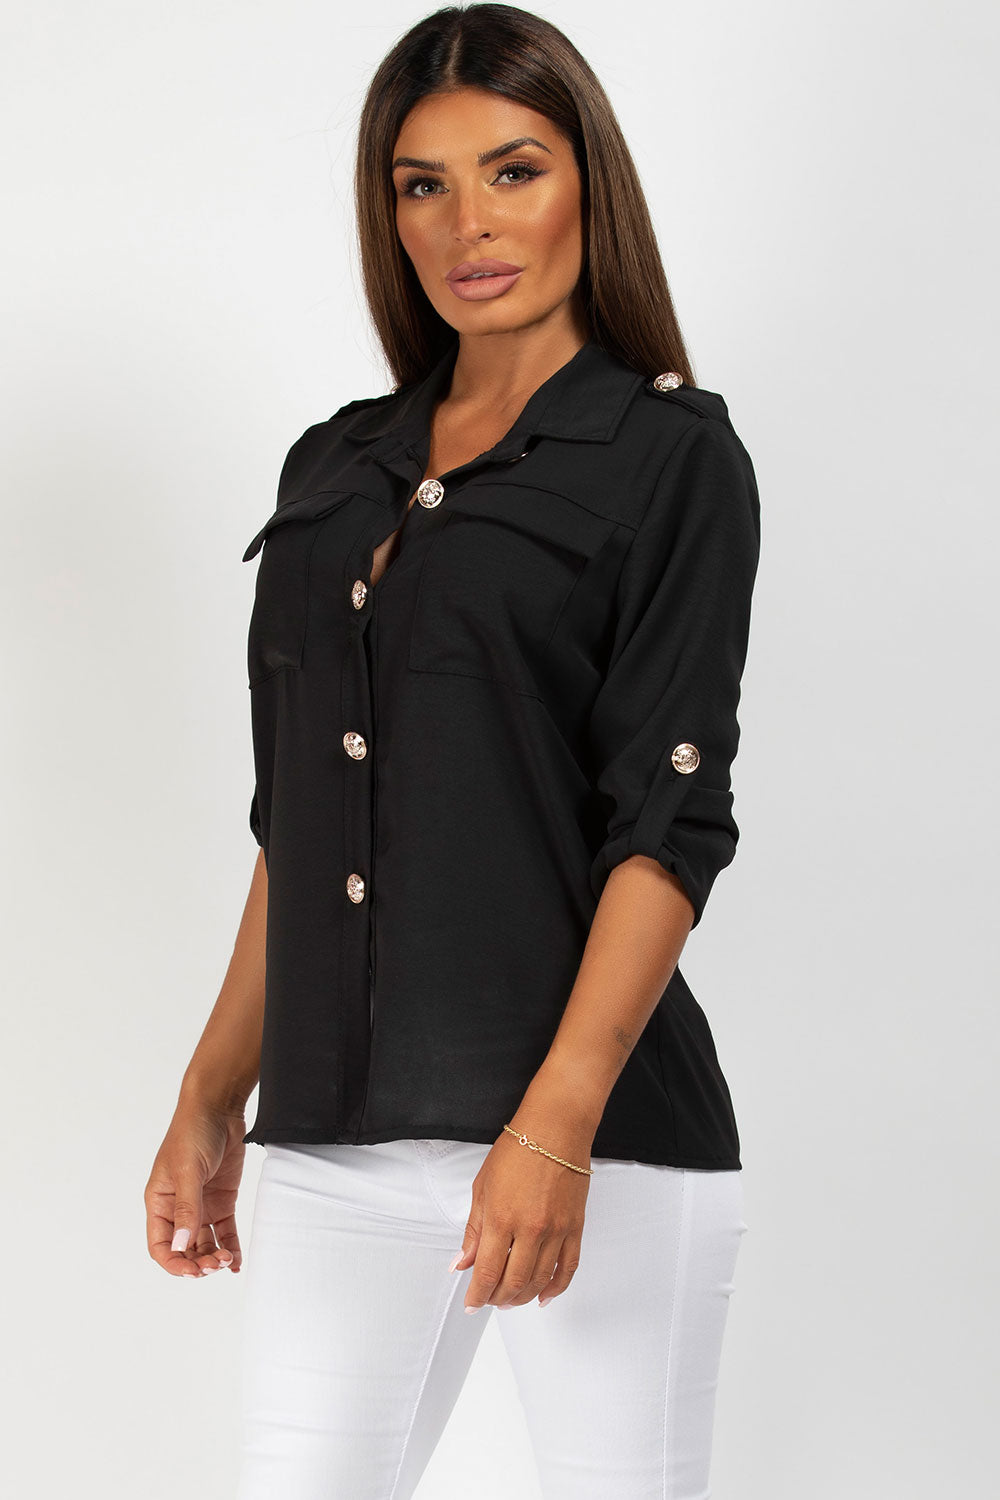 gold button shirt black